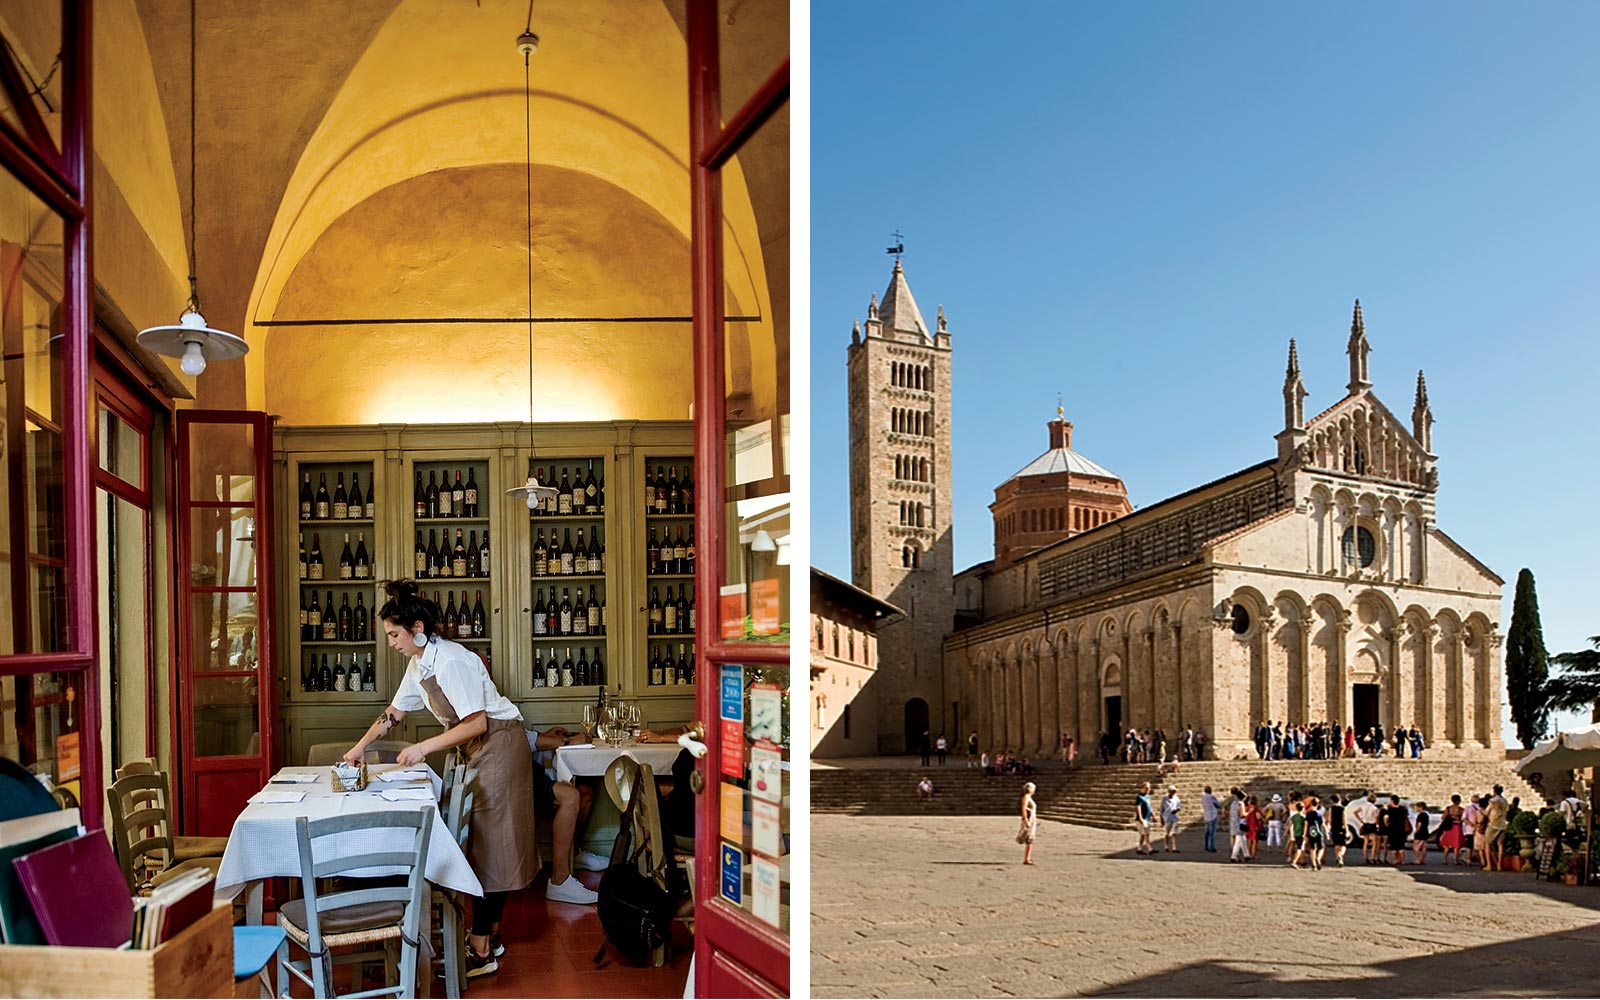 The interior of La BotteGaia restaurant, and the cathedral of Massa Maritima, in Italy